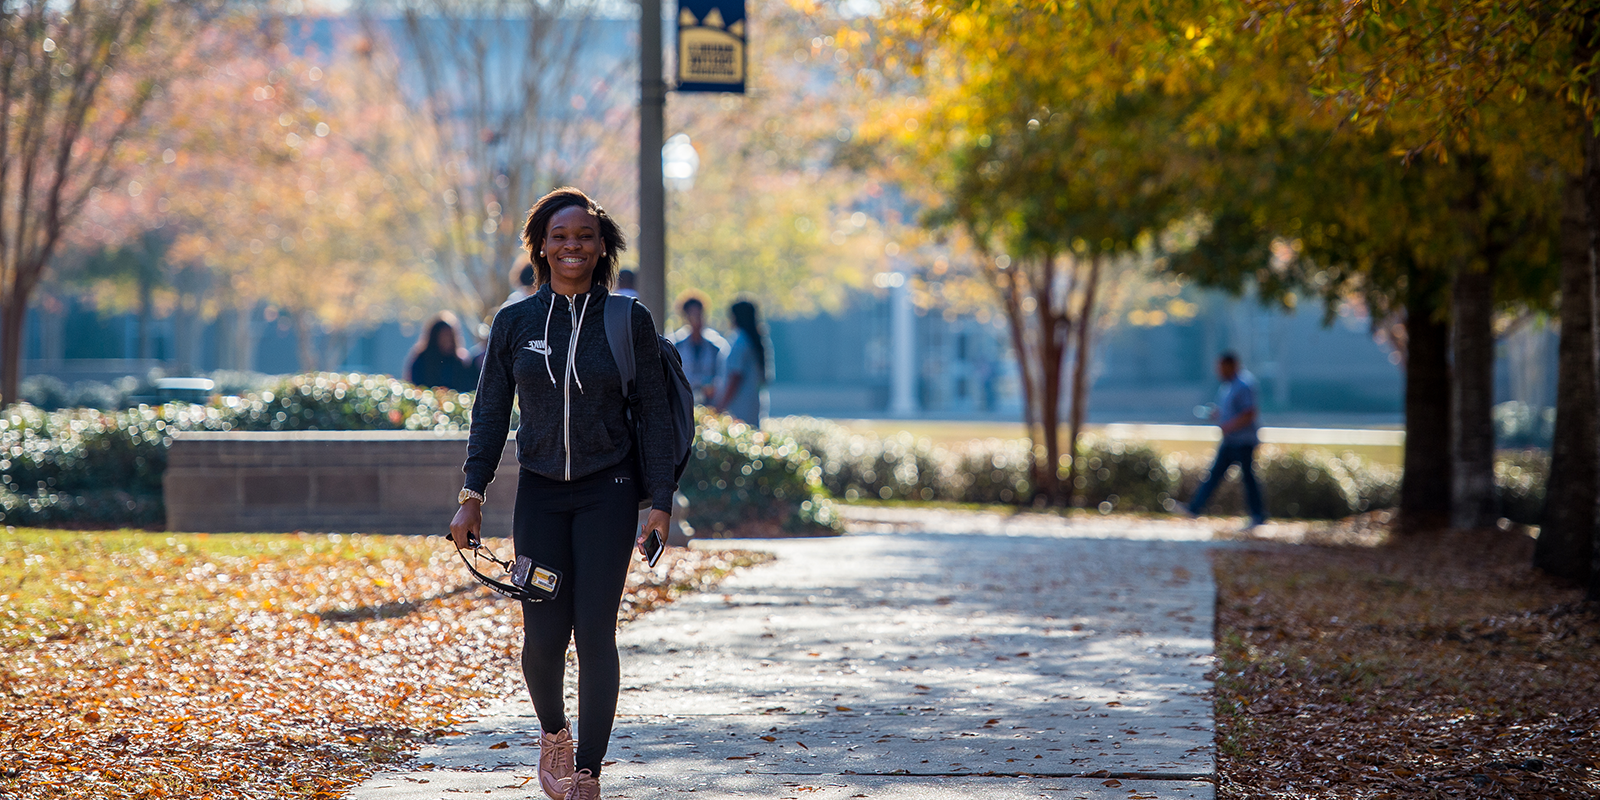 Student walking on the MGCCC campus smiling at camera